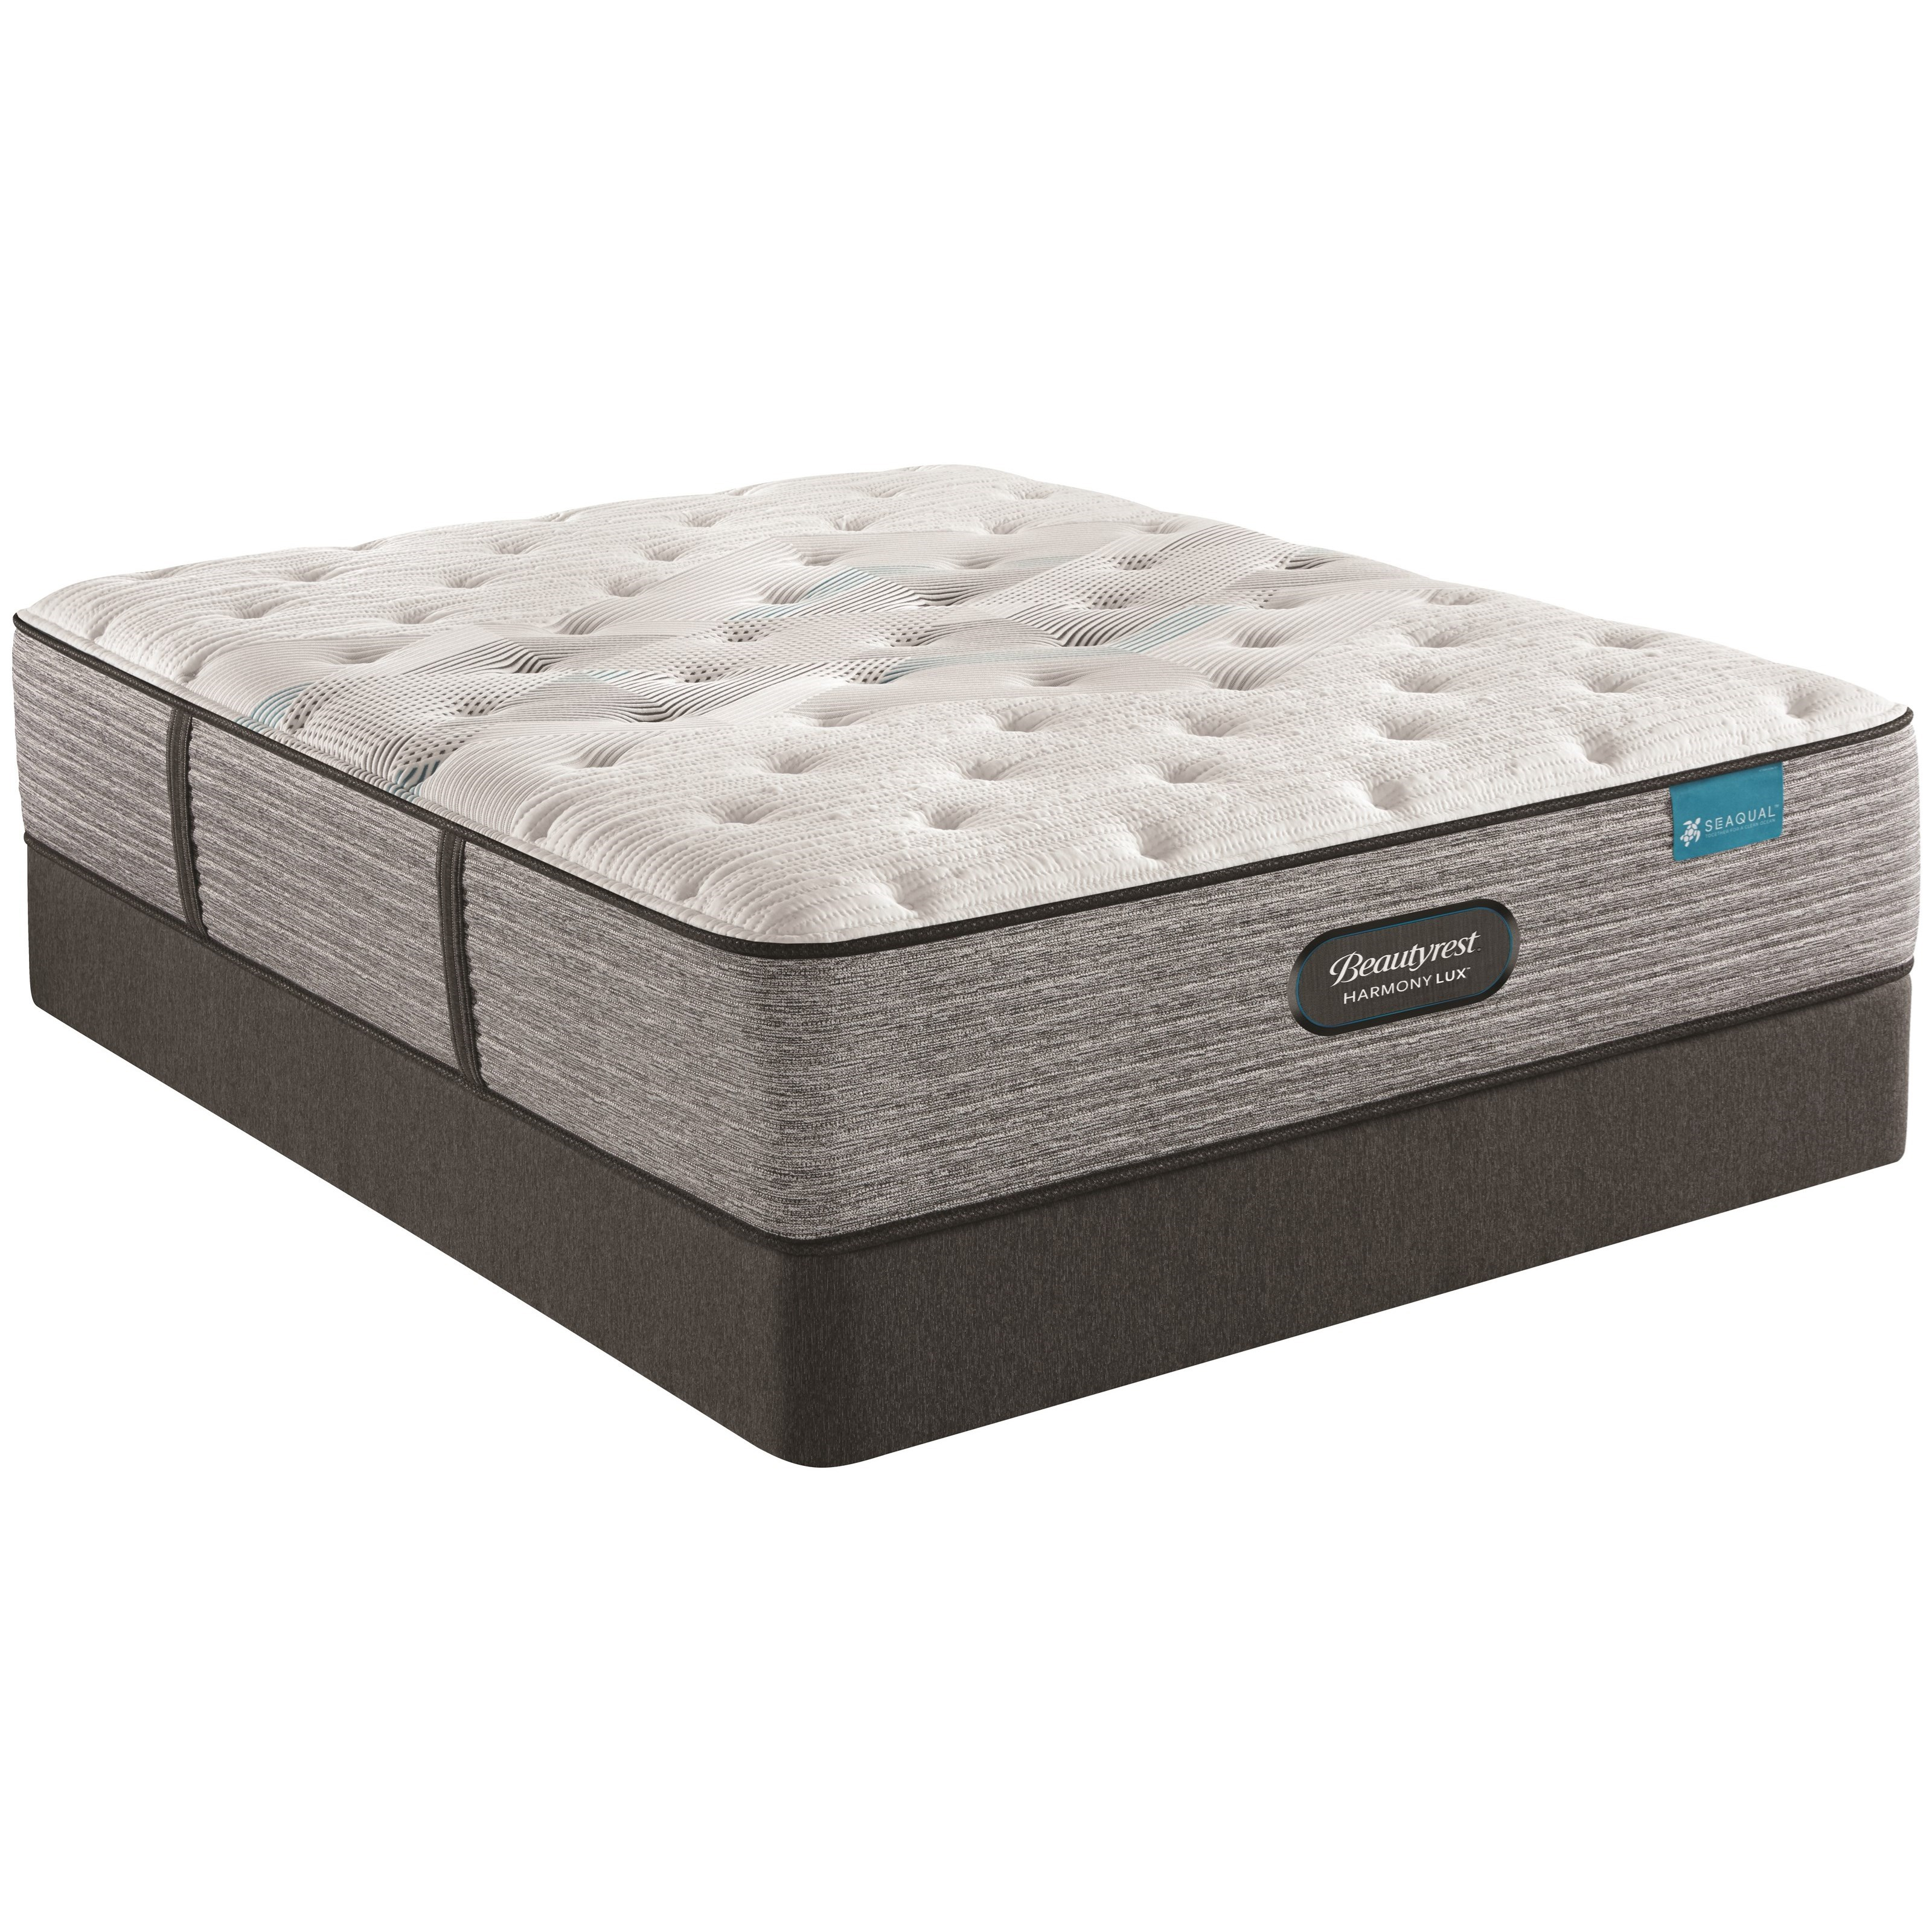 "Carbon Series Plush Full 13 3/4"" Plush Mattress Set by Beautyrest at Novello Home Furnishings"